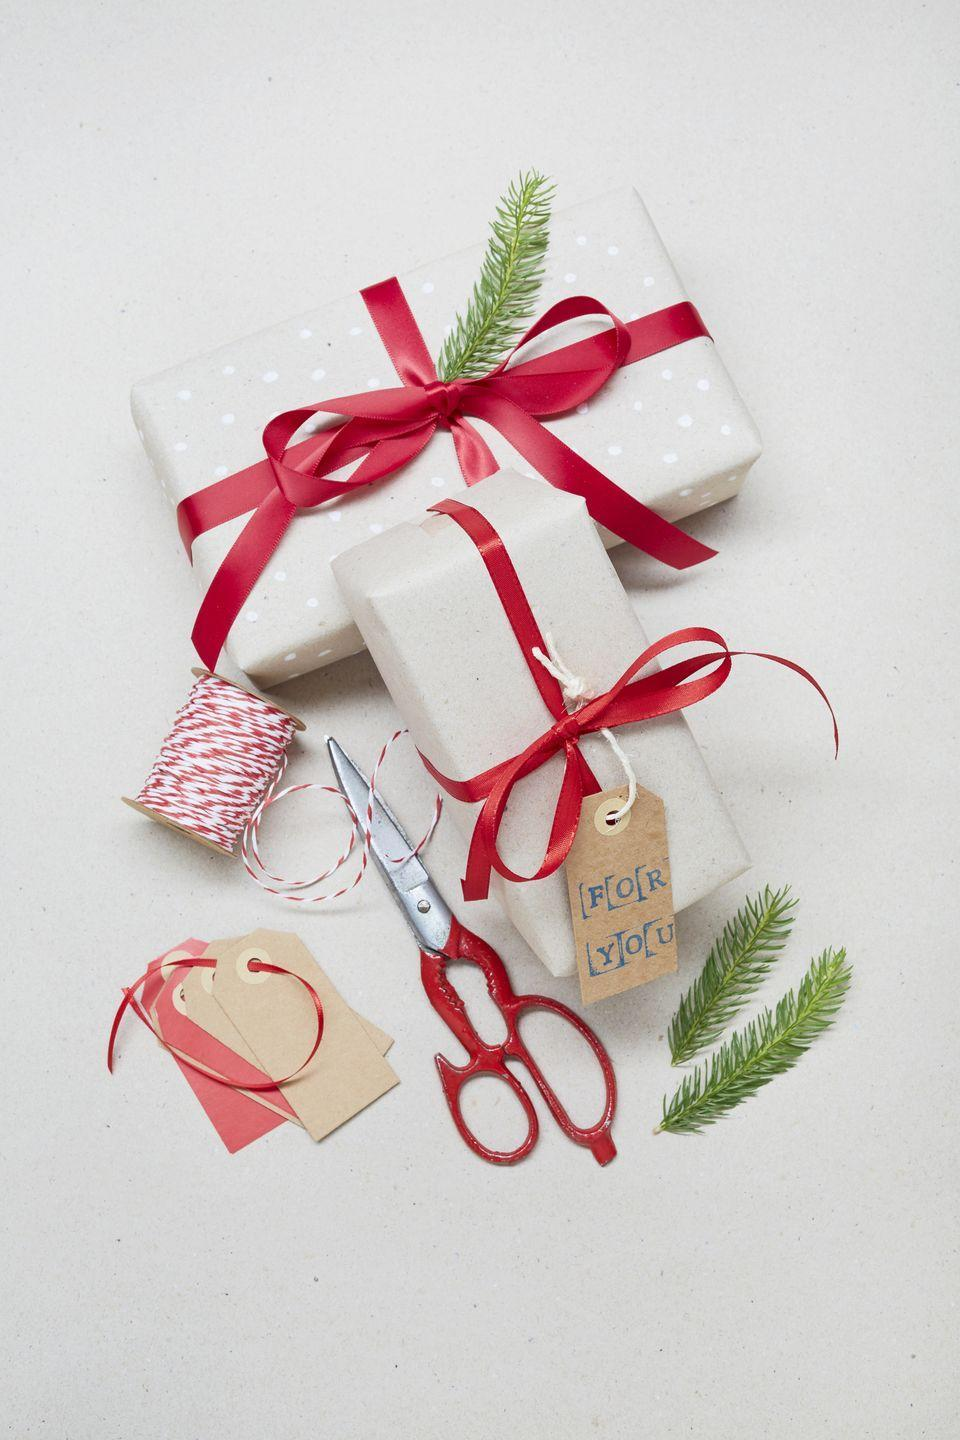 """<p>Here's a fun way to make quick work of wrapping <em>all those presents </em>under the tree: Grab a timer and see which family member can wrap the most gifts in the shortest amount of time. Up the stakes by imposing a """"one hand only"""" rule. </p><p><a class=""""link rapid-noclick-resp"""" href=""""https://www.amazon.com/Hallmark-Reversible-Christmas-Wrapping-Holidays/dp/B01M2UWPSZ?tag=syn-yahoo-20&ascsubtag=%5Bartid%7C10072.g.33643974%5Bsrc%7Cyahoo-us"""" rel=""""nofollow noopener"""" target=""""_blank"""" data-ylk=""""slk:SHOP WRAPPING PAPER"""">SHOP WRAPPING PAPER</a><br></p>"""